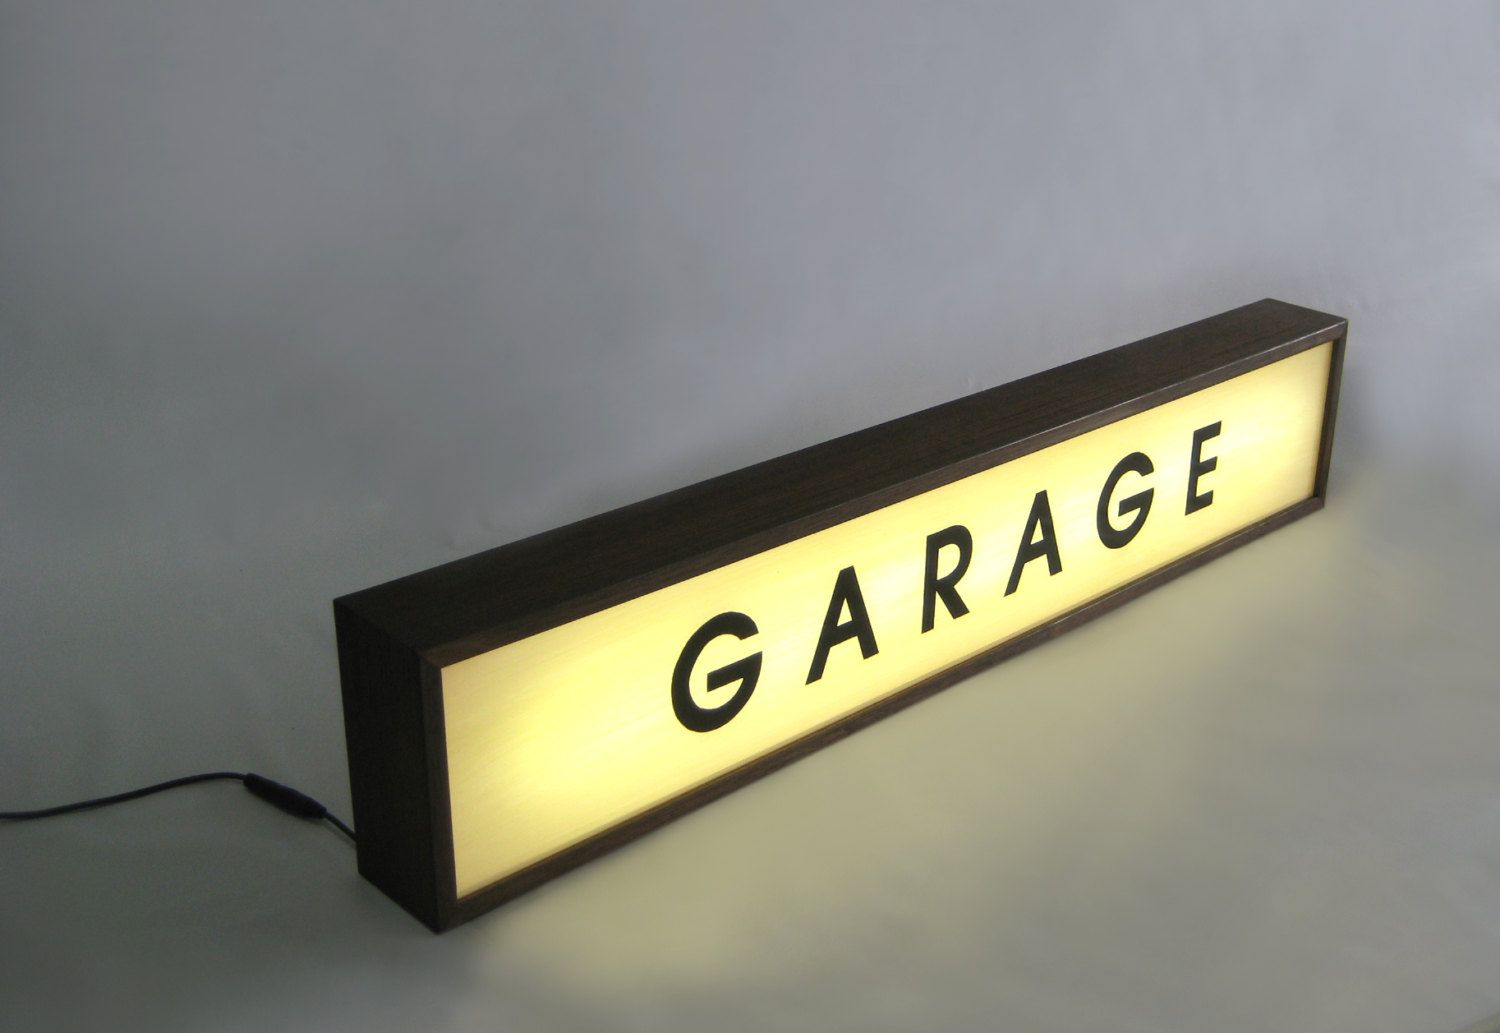 Lighted Garage Sign Handcrafted Wooden Light Box Sign For Man Cave Wall Art Hand Painted Signs 84 X 16 Cm Light Box Sign Wooden Light Light Box